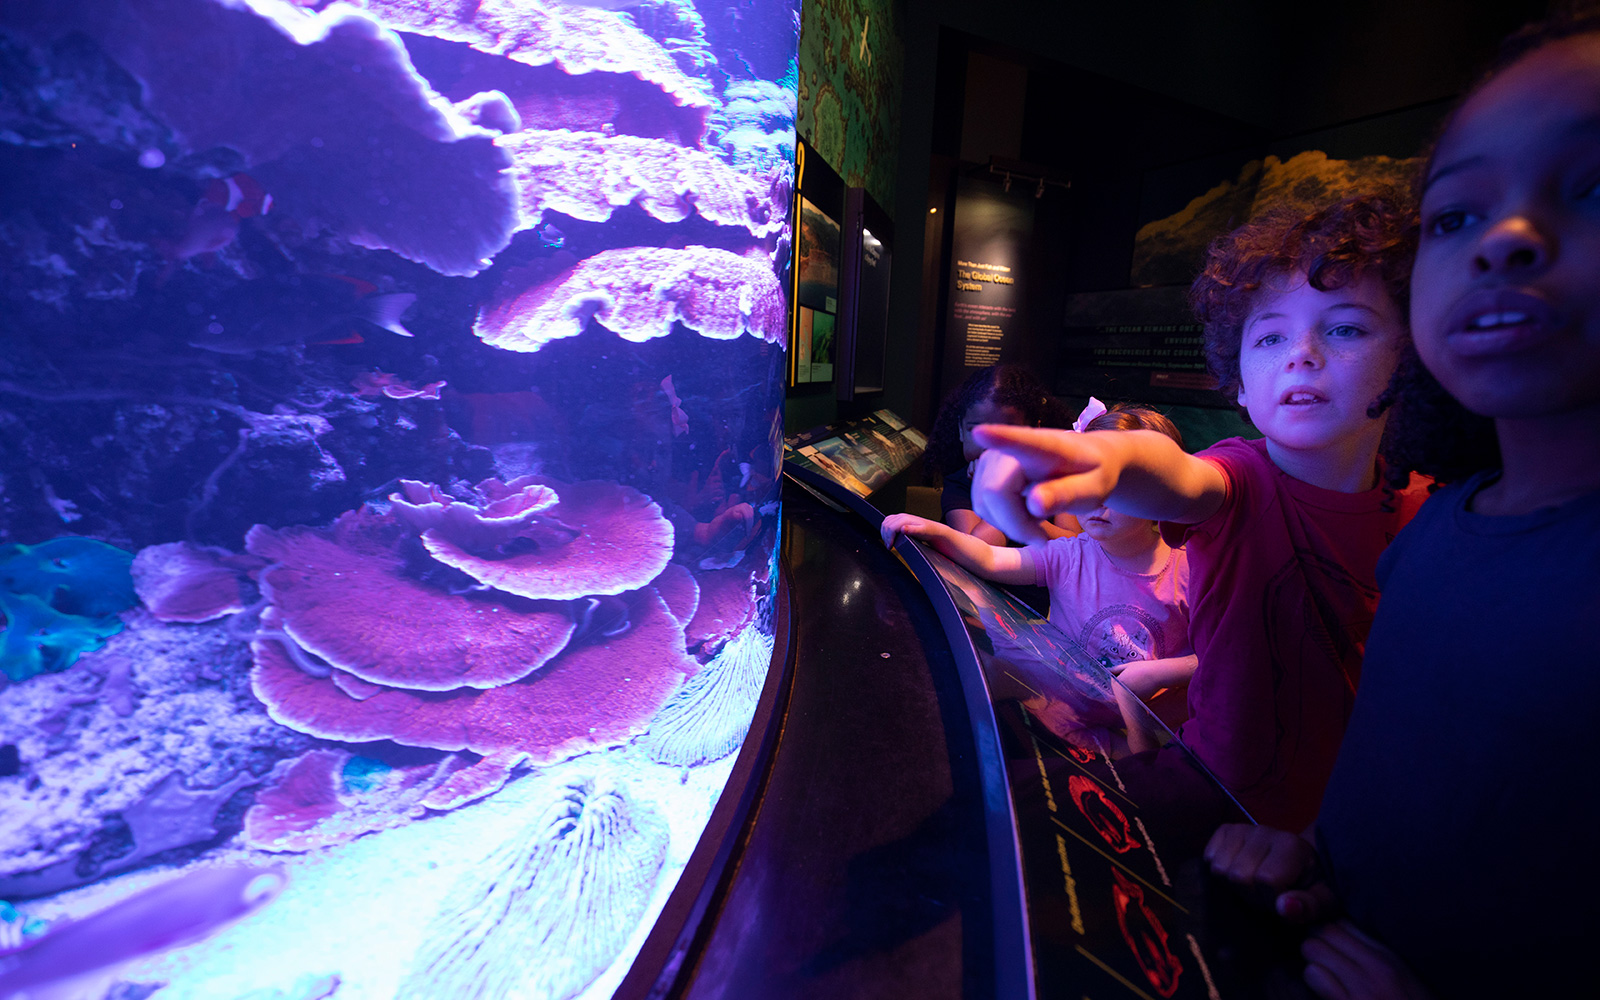 Two children in a dark exhibit hall looking at the coral reef fish tank which is right in front of them.